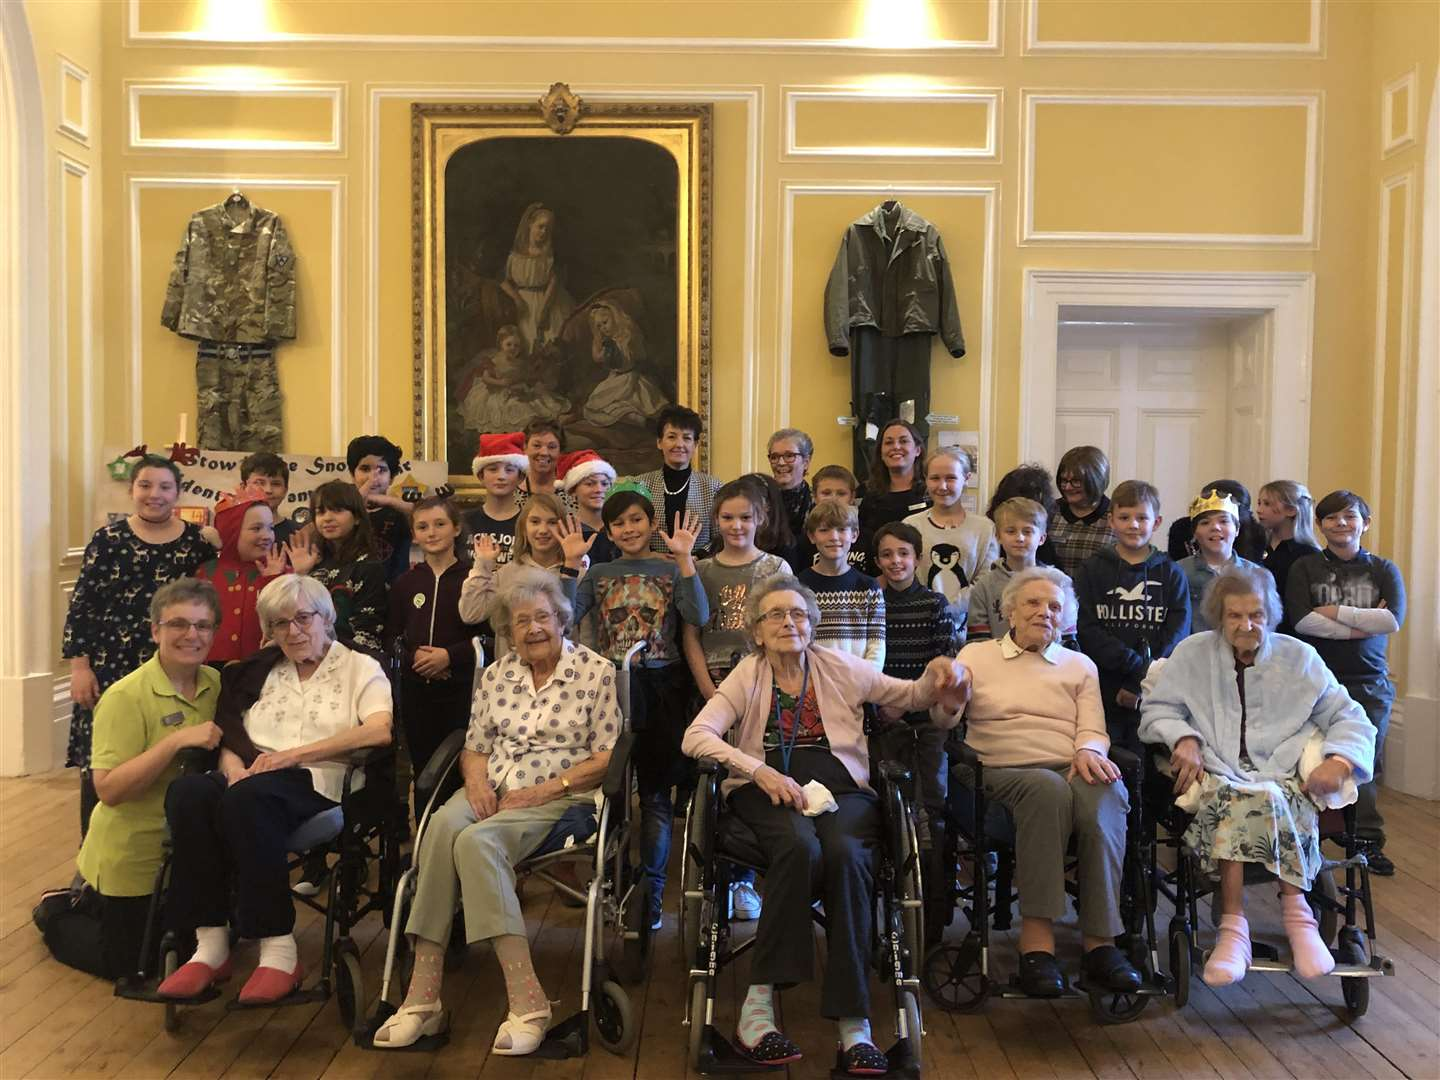 Staff and residents at Stowlangtoft Hall with Bury St Edmunds MP Jo Churchill and Year 6 pupils from Norton Primary School. Picture: Alex Ball.